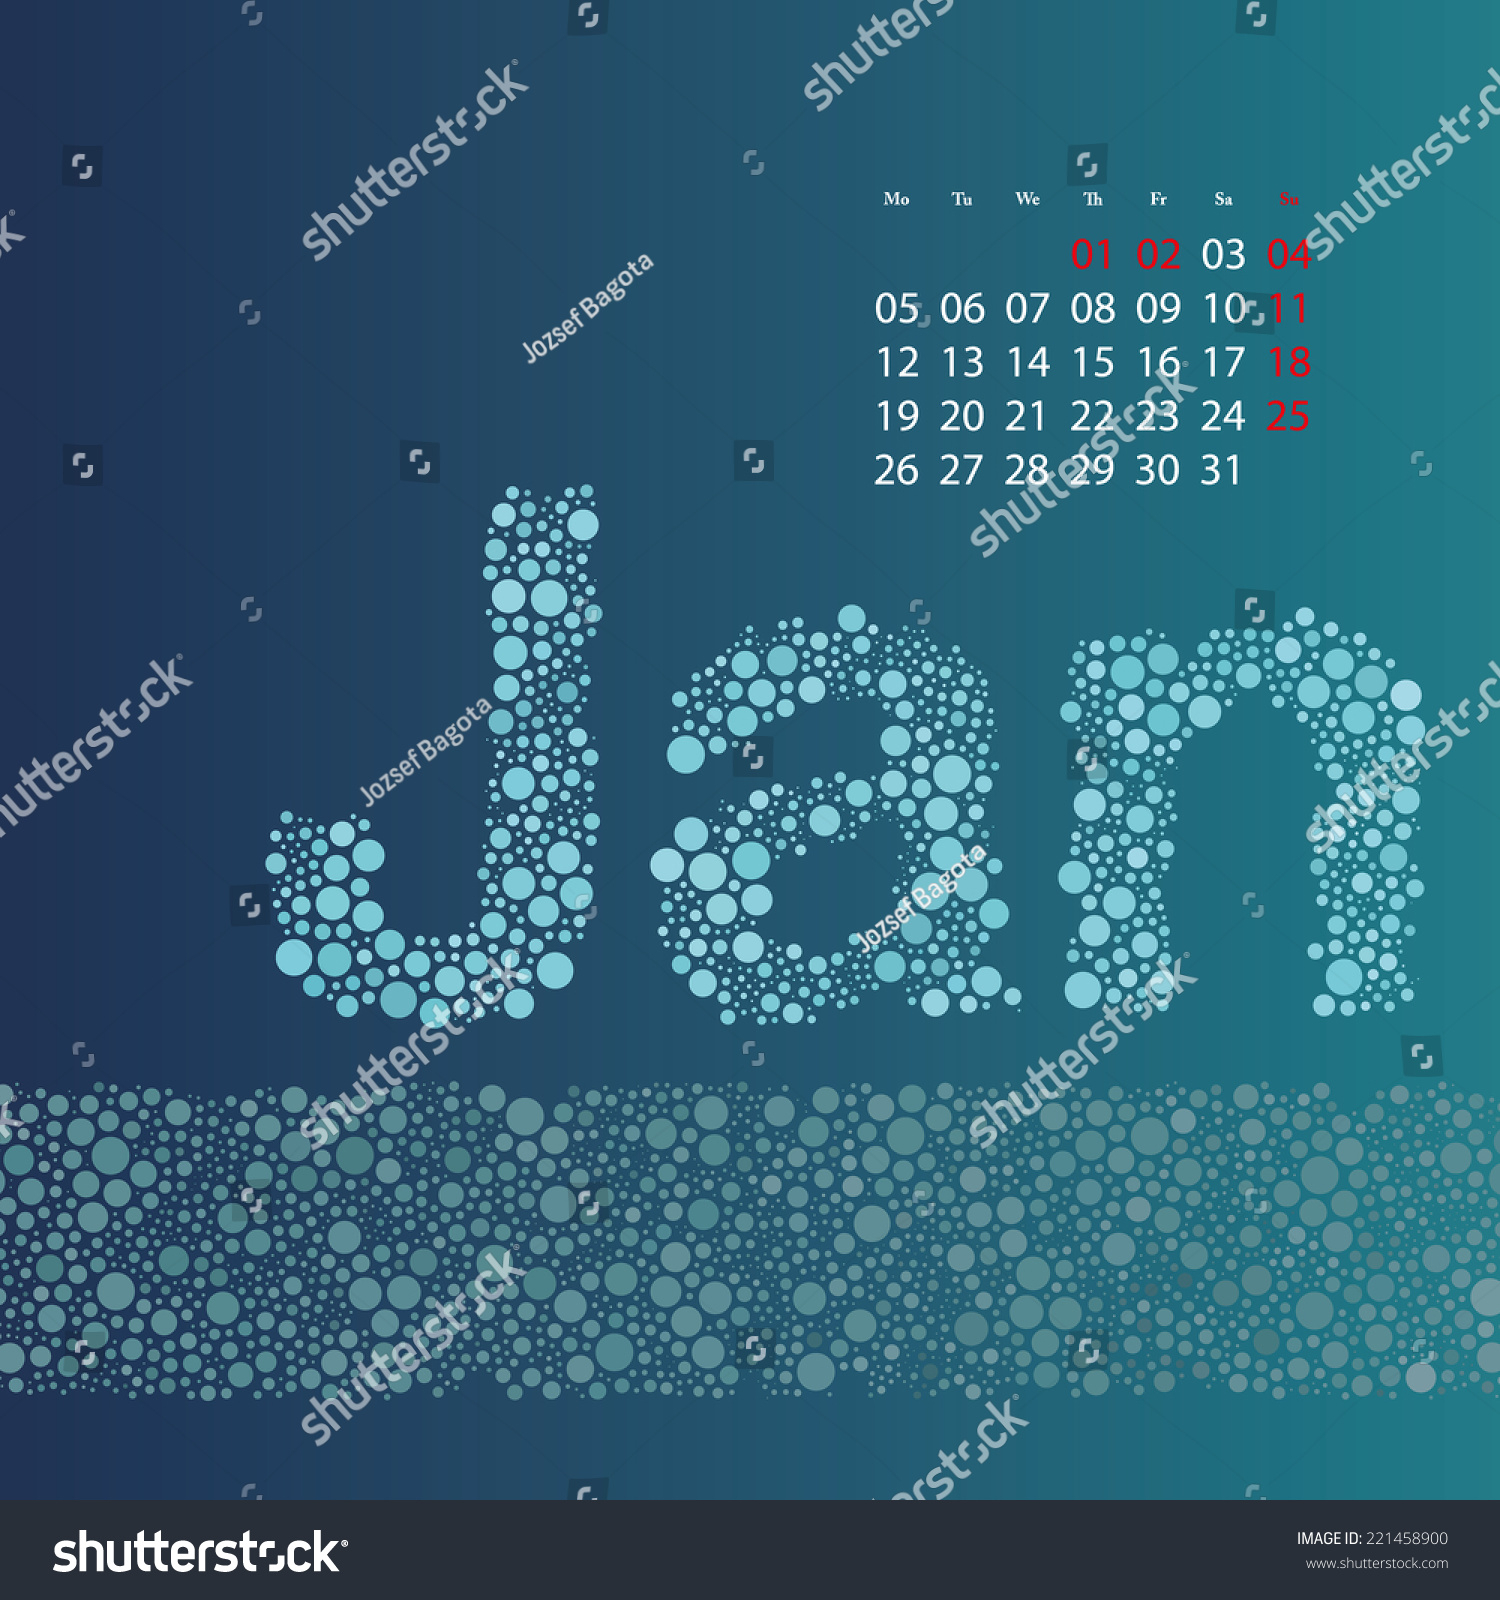 Abstract Dotted Monthly Calendar Design Elements Stock Vector pertaining to Monthly Calendar Template Clip Art